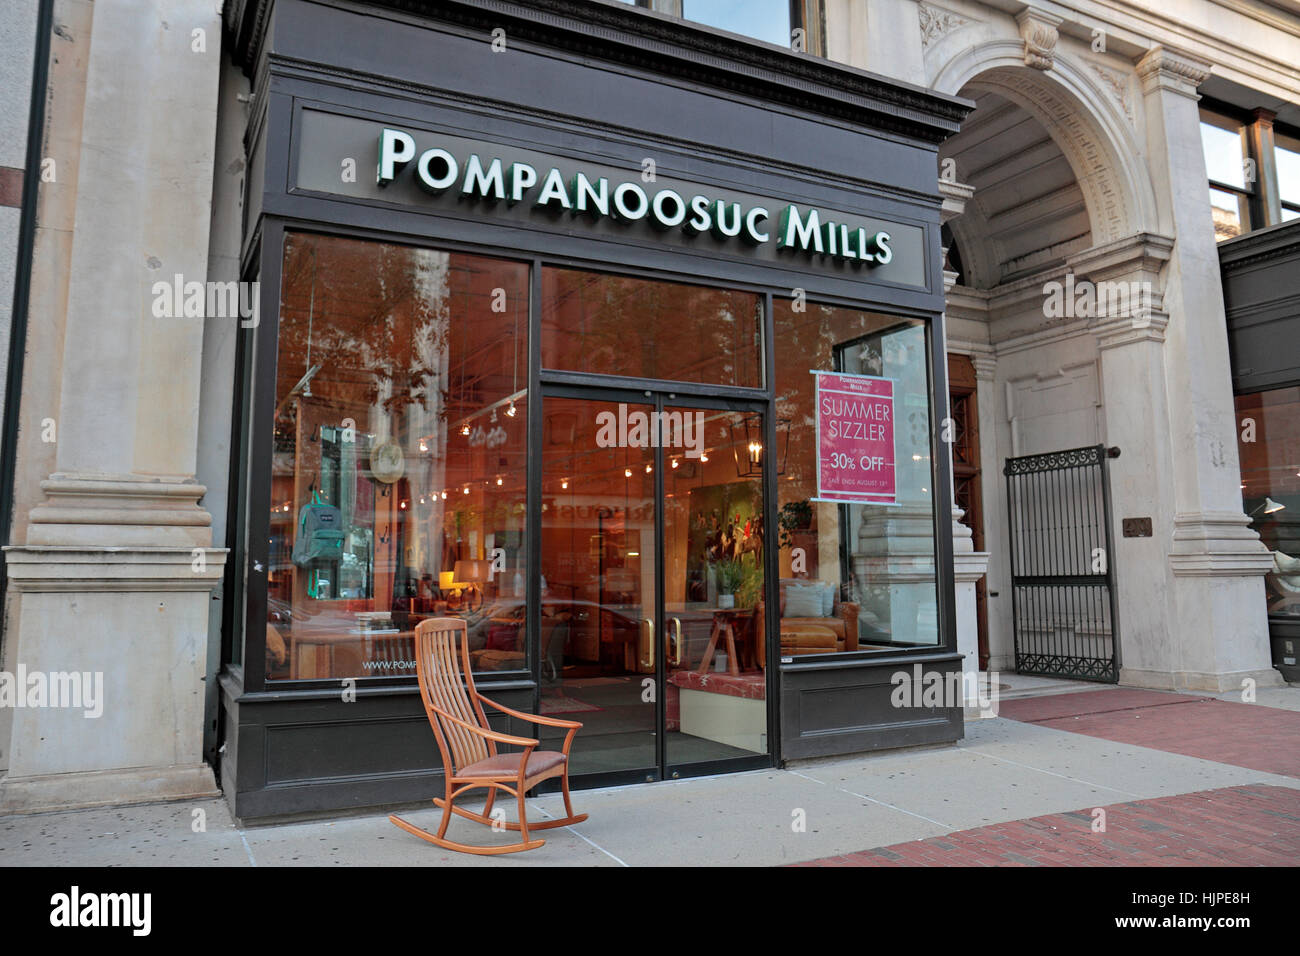 The Pompanoosuc Mills Furniture Store Retail Outlet On Boylston